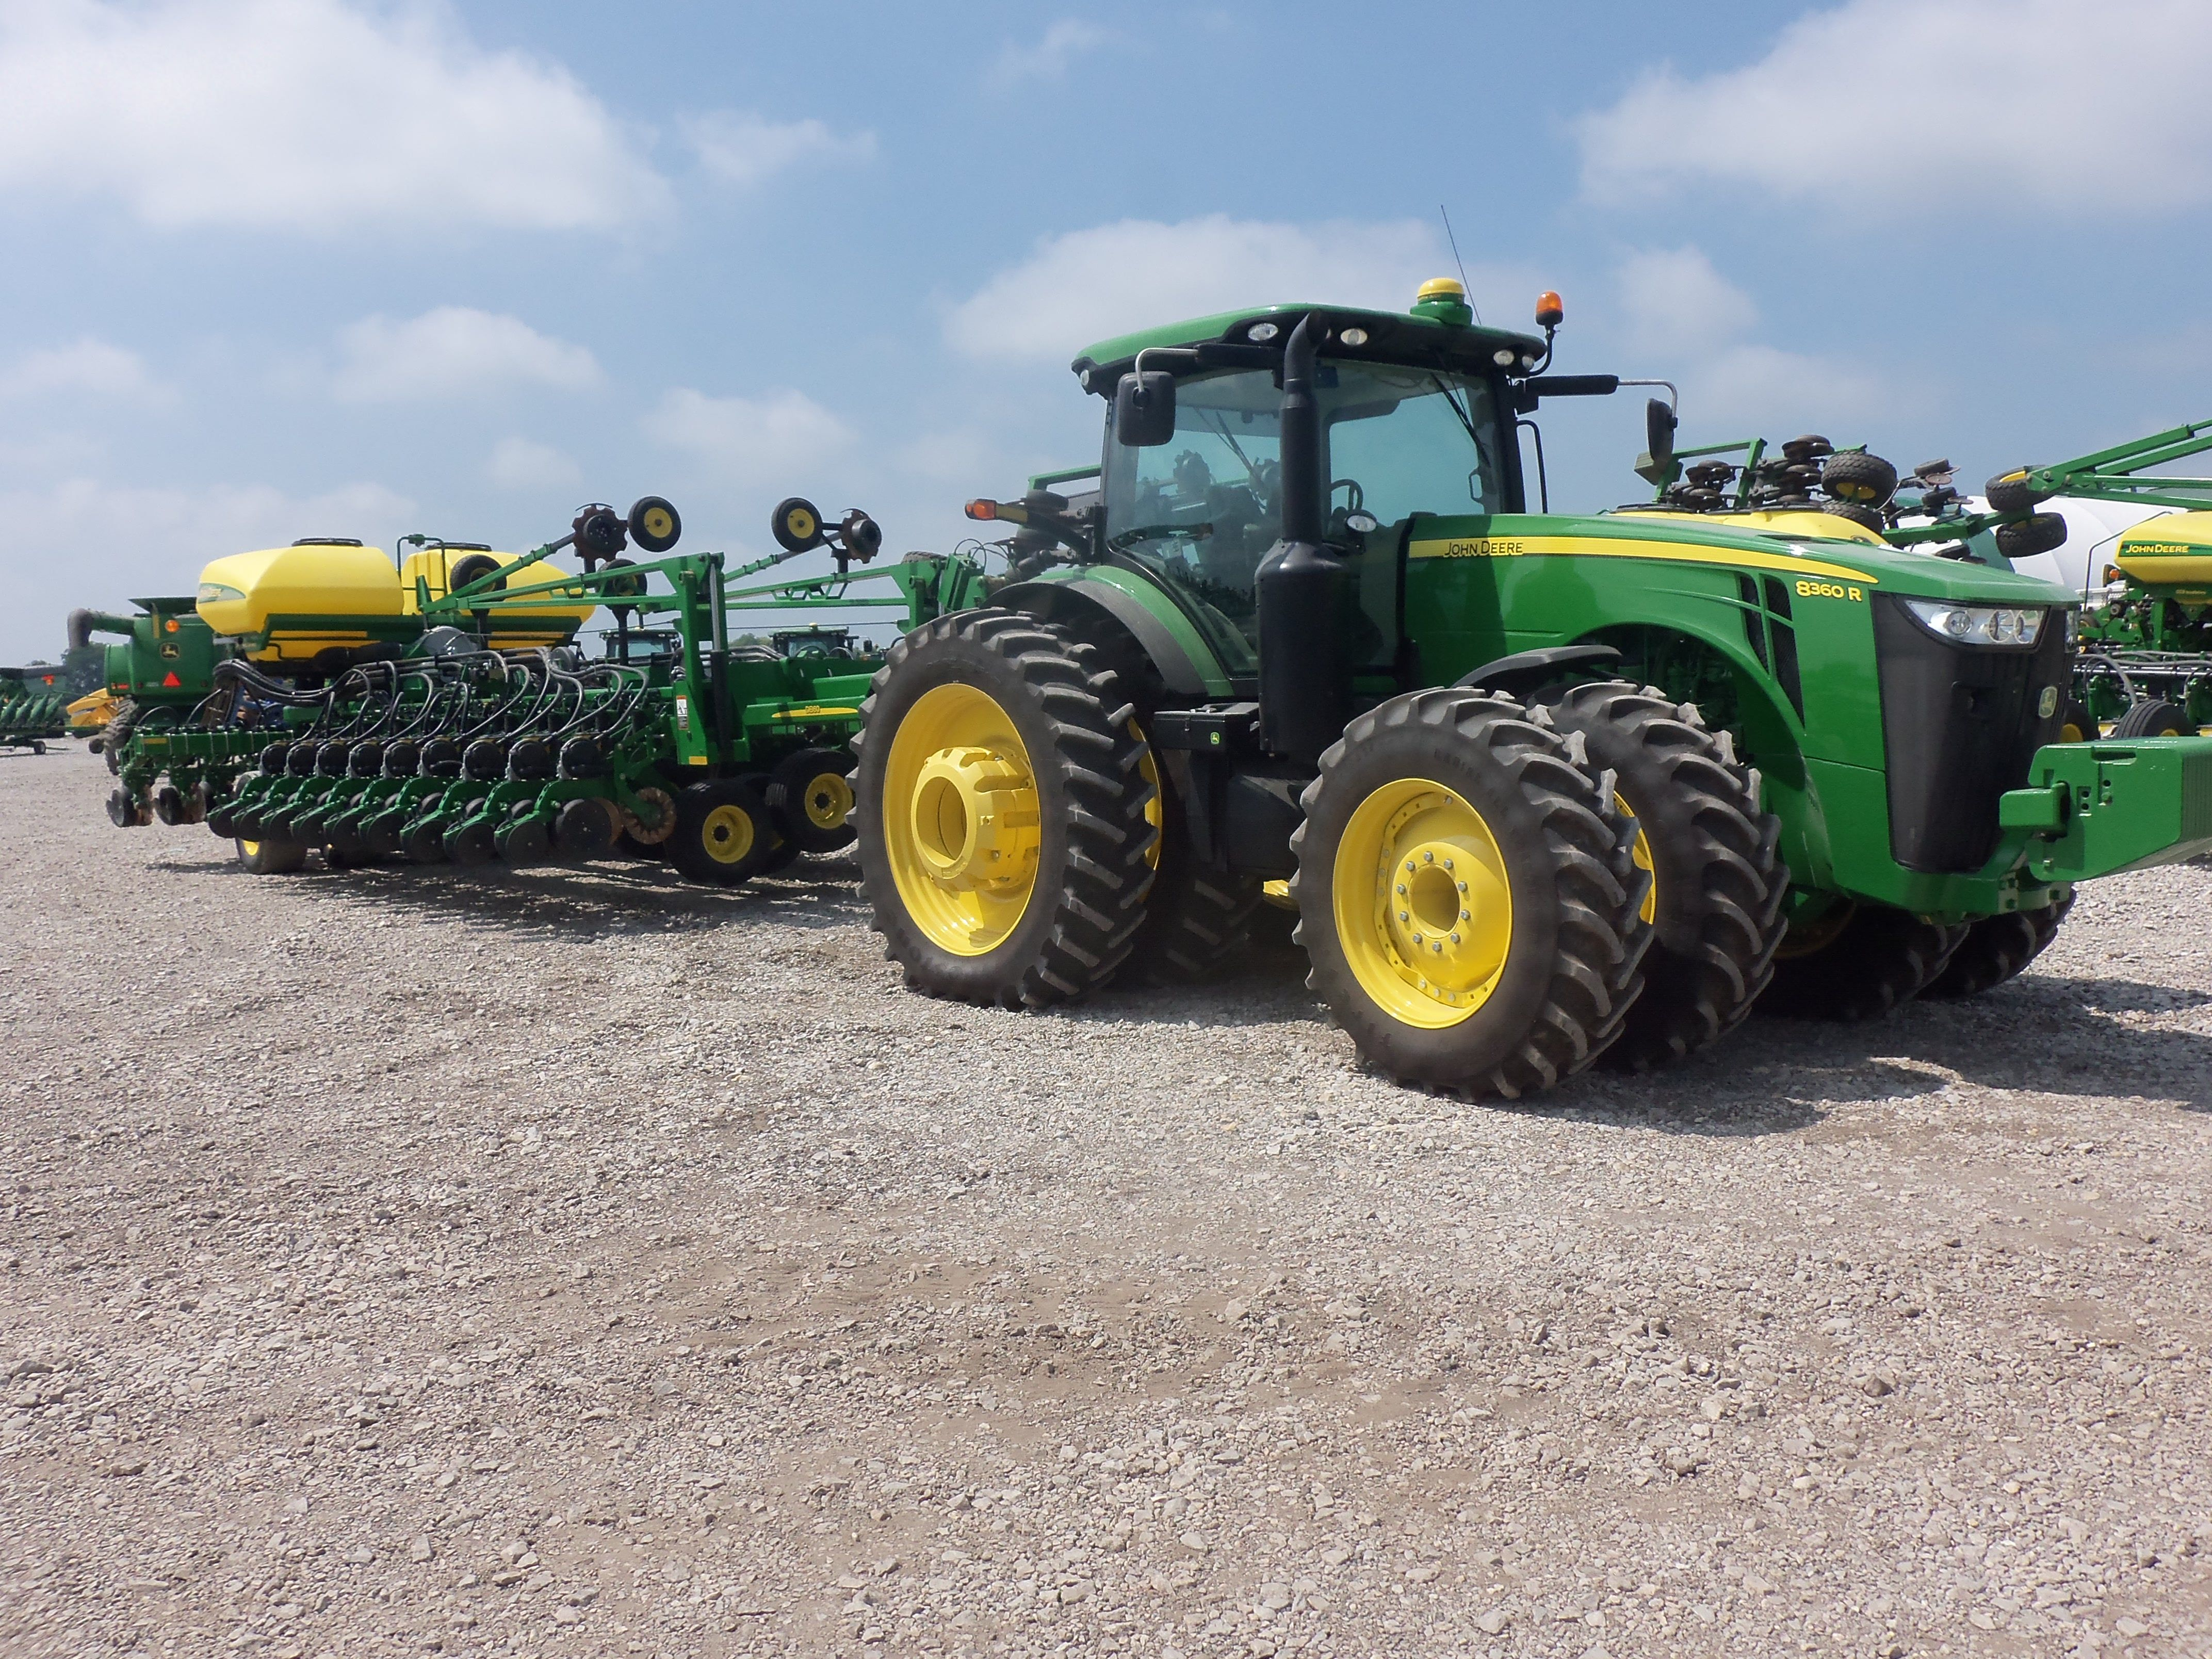 Great big John Deere combonation.8360R hooked to 48 row DB 60 corn planter